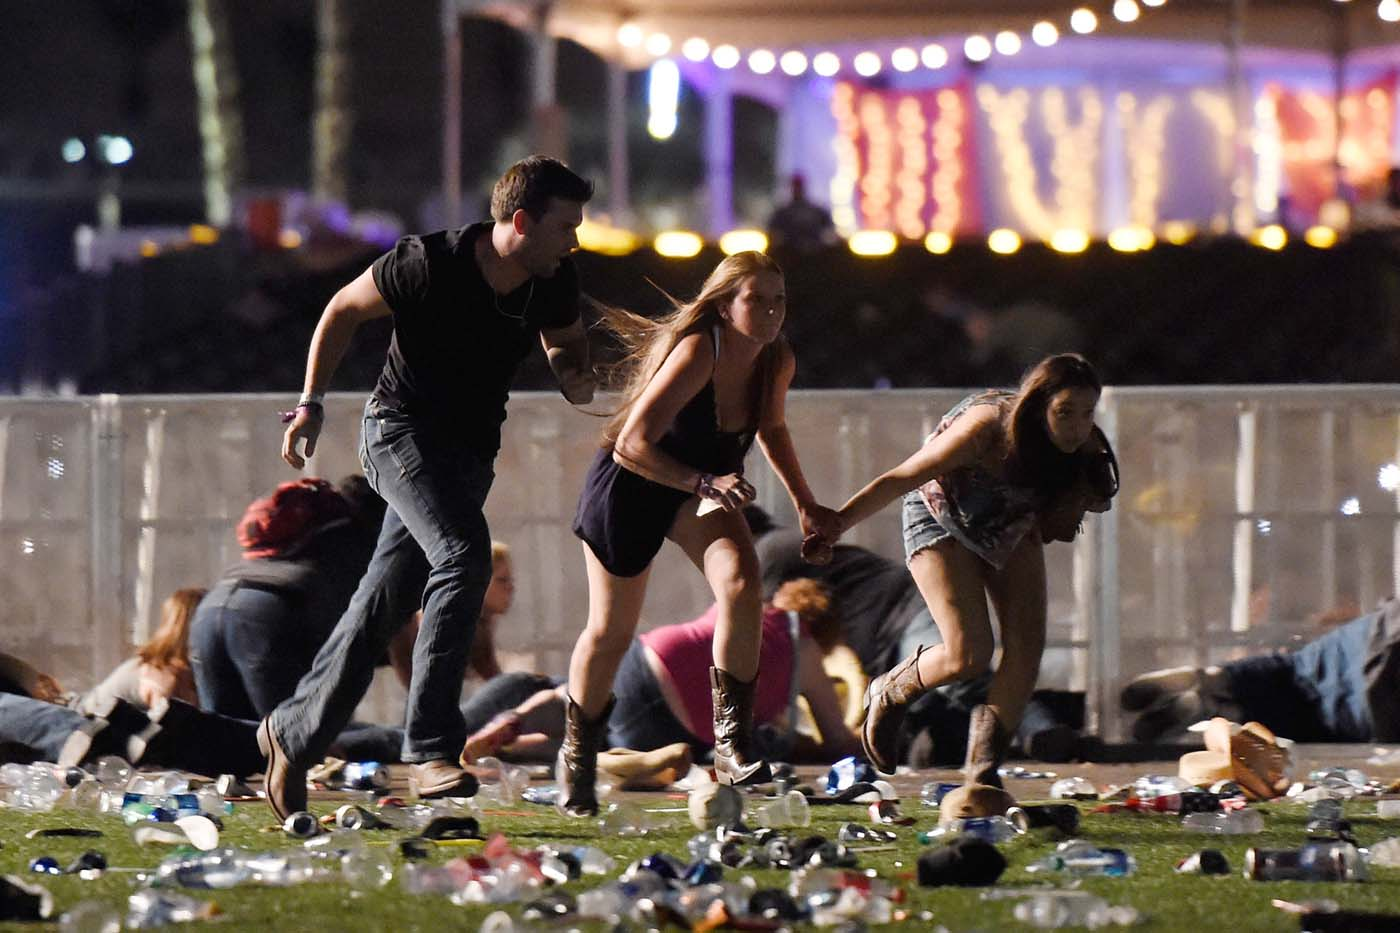 LAS VEGAS, NV - OCTOBER 01: People run from the Route 91 Harvest country music festival after apparent gun fire was hear on October 1, 2017 in Las Vegas, Nevada. A gunman has opened fire on a music festival in Las Vegas, leaving at least 20 people dead and more than 100 injured. Police have confirmed that one suspect has been shot. The investigation is ongoing. David Becker/Getty Images/AFP